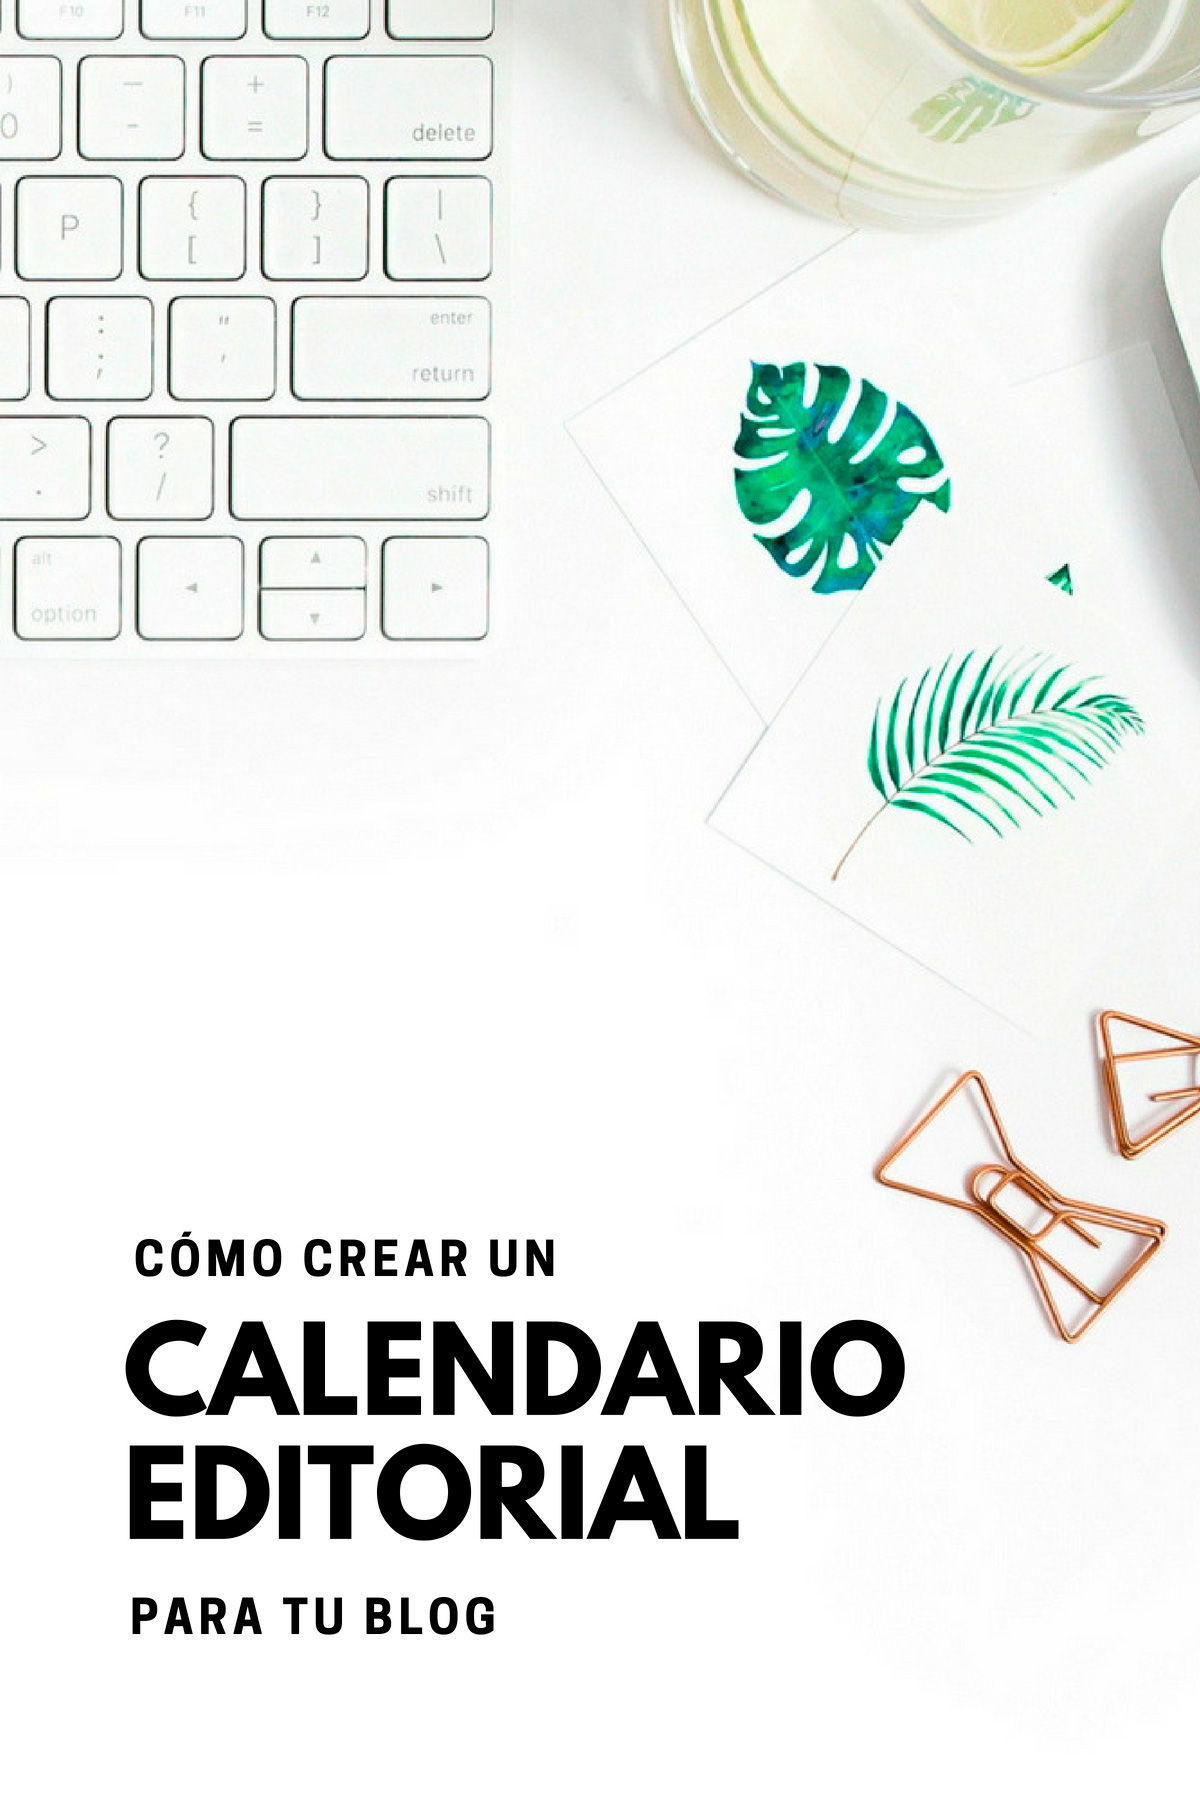 Cómo crear un calendario editorial para tu blog | marysocoortiz.com